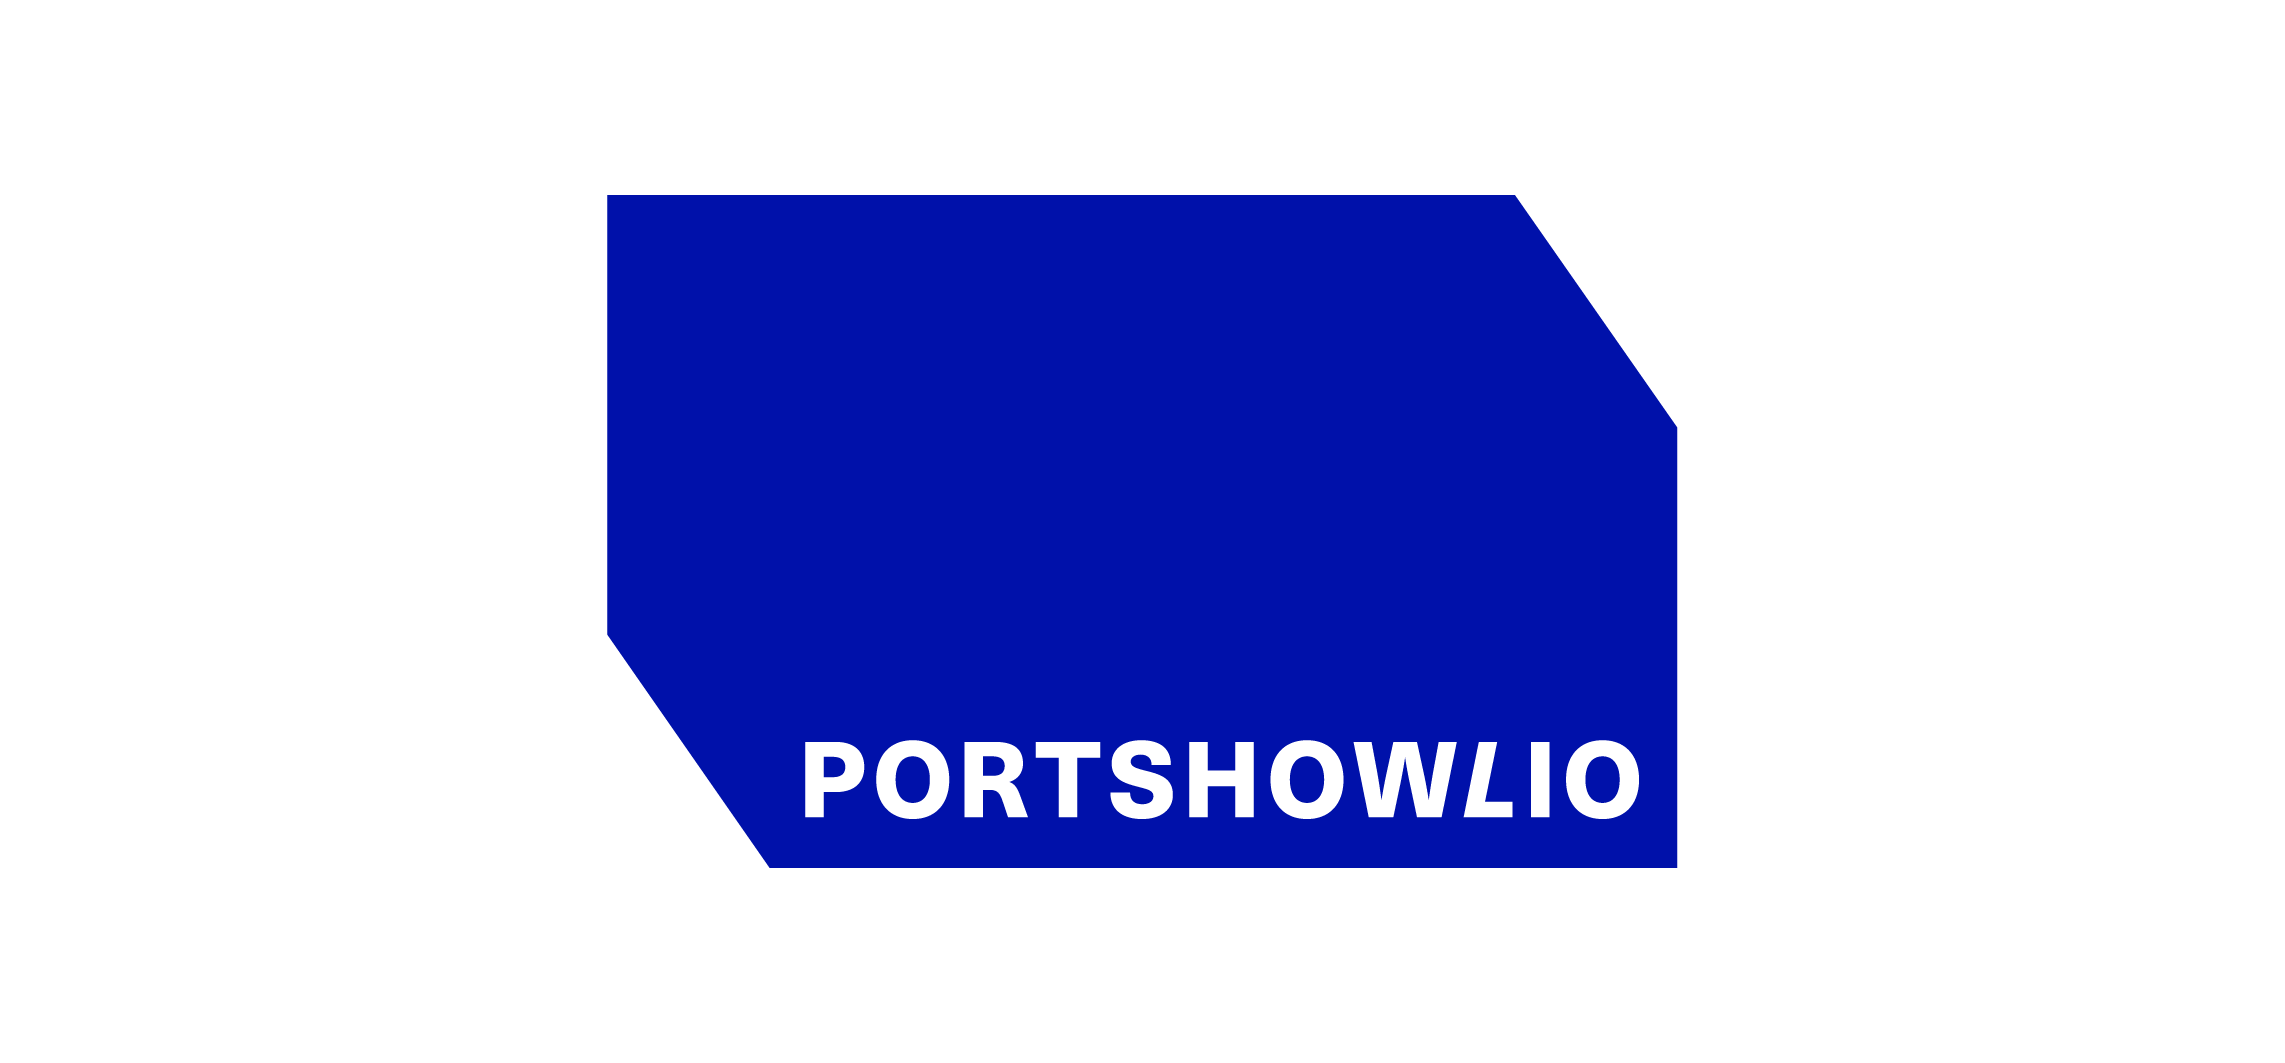 port-logo_blue-white-ps-full